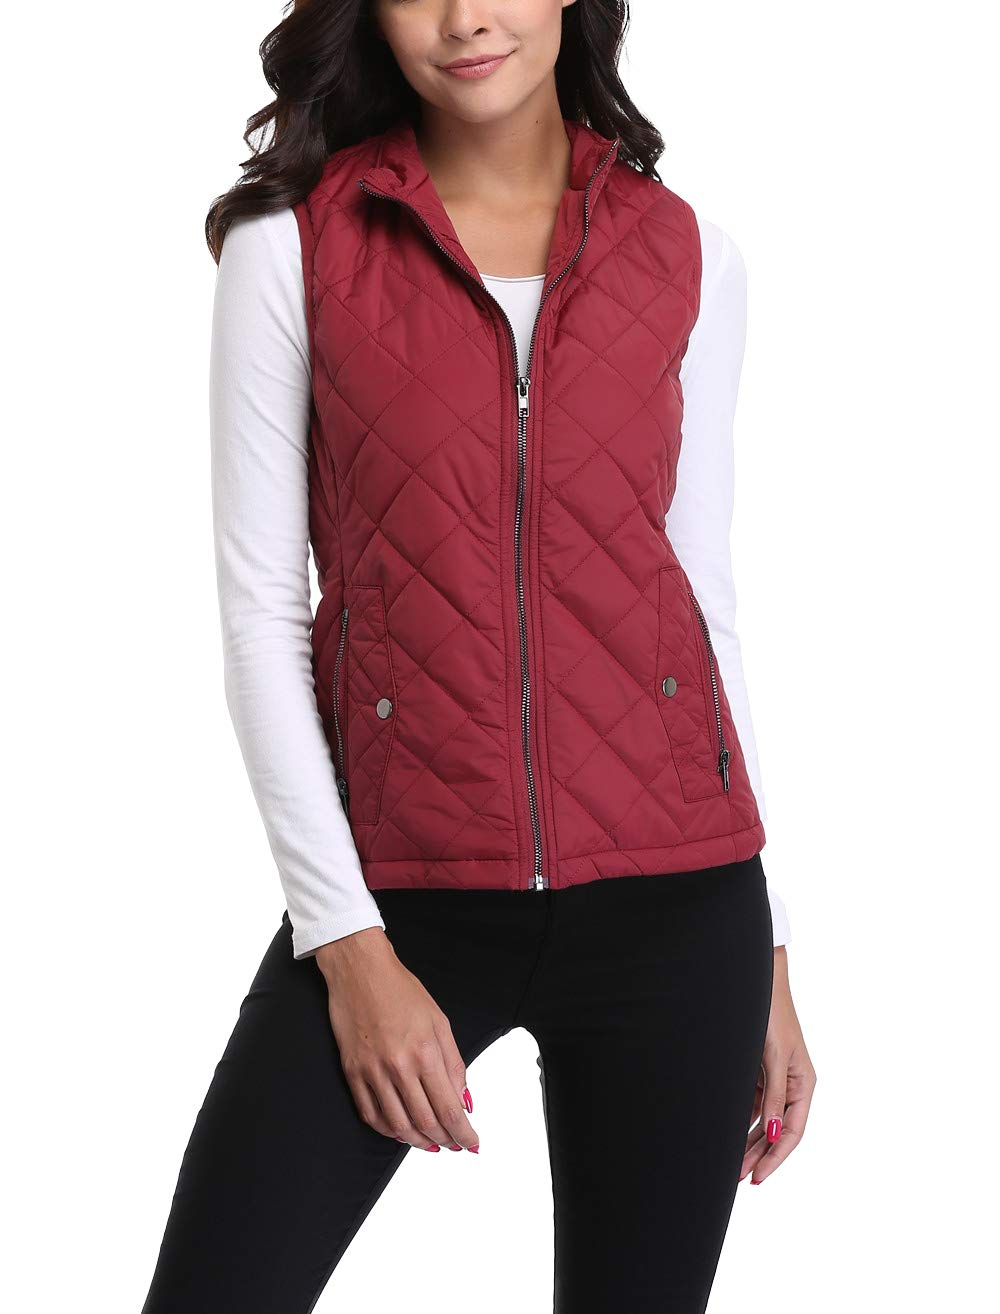 MISS MOLY Women's Zip up Stand Collar Lightweight Quilted Gilets Packable Padded Vest w 2 Side Zip Pockets S